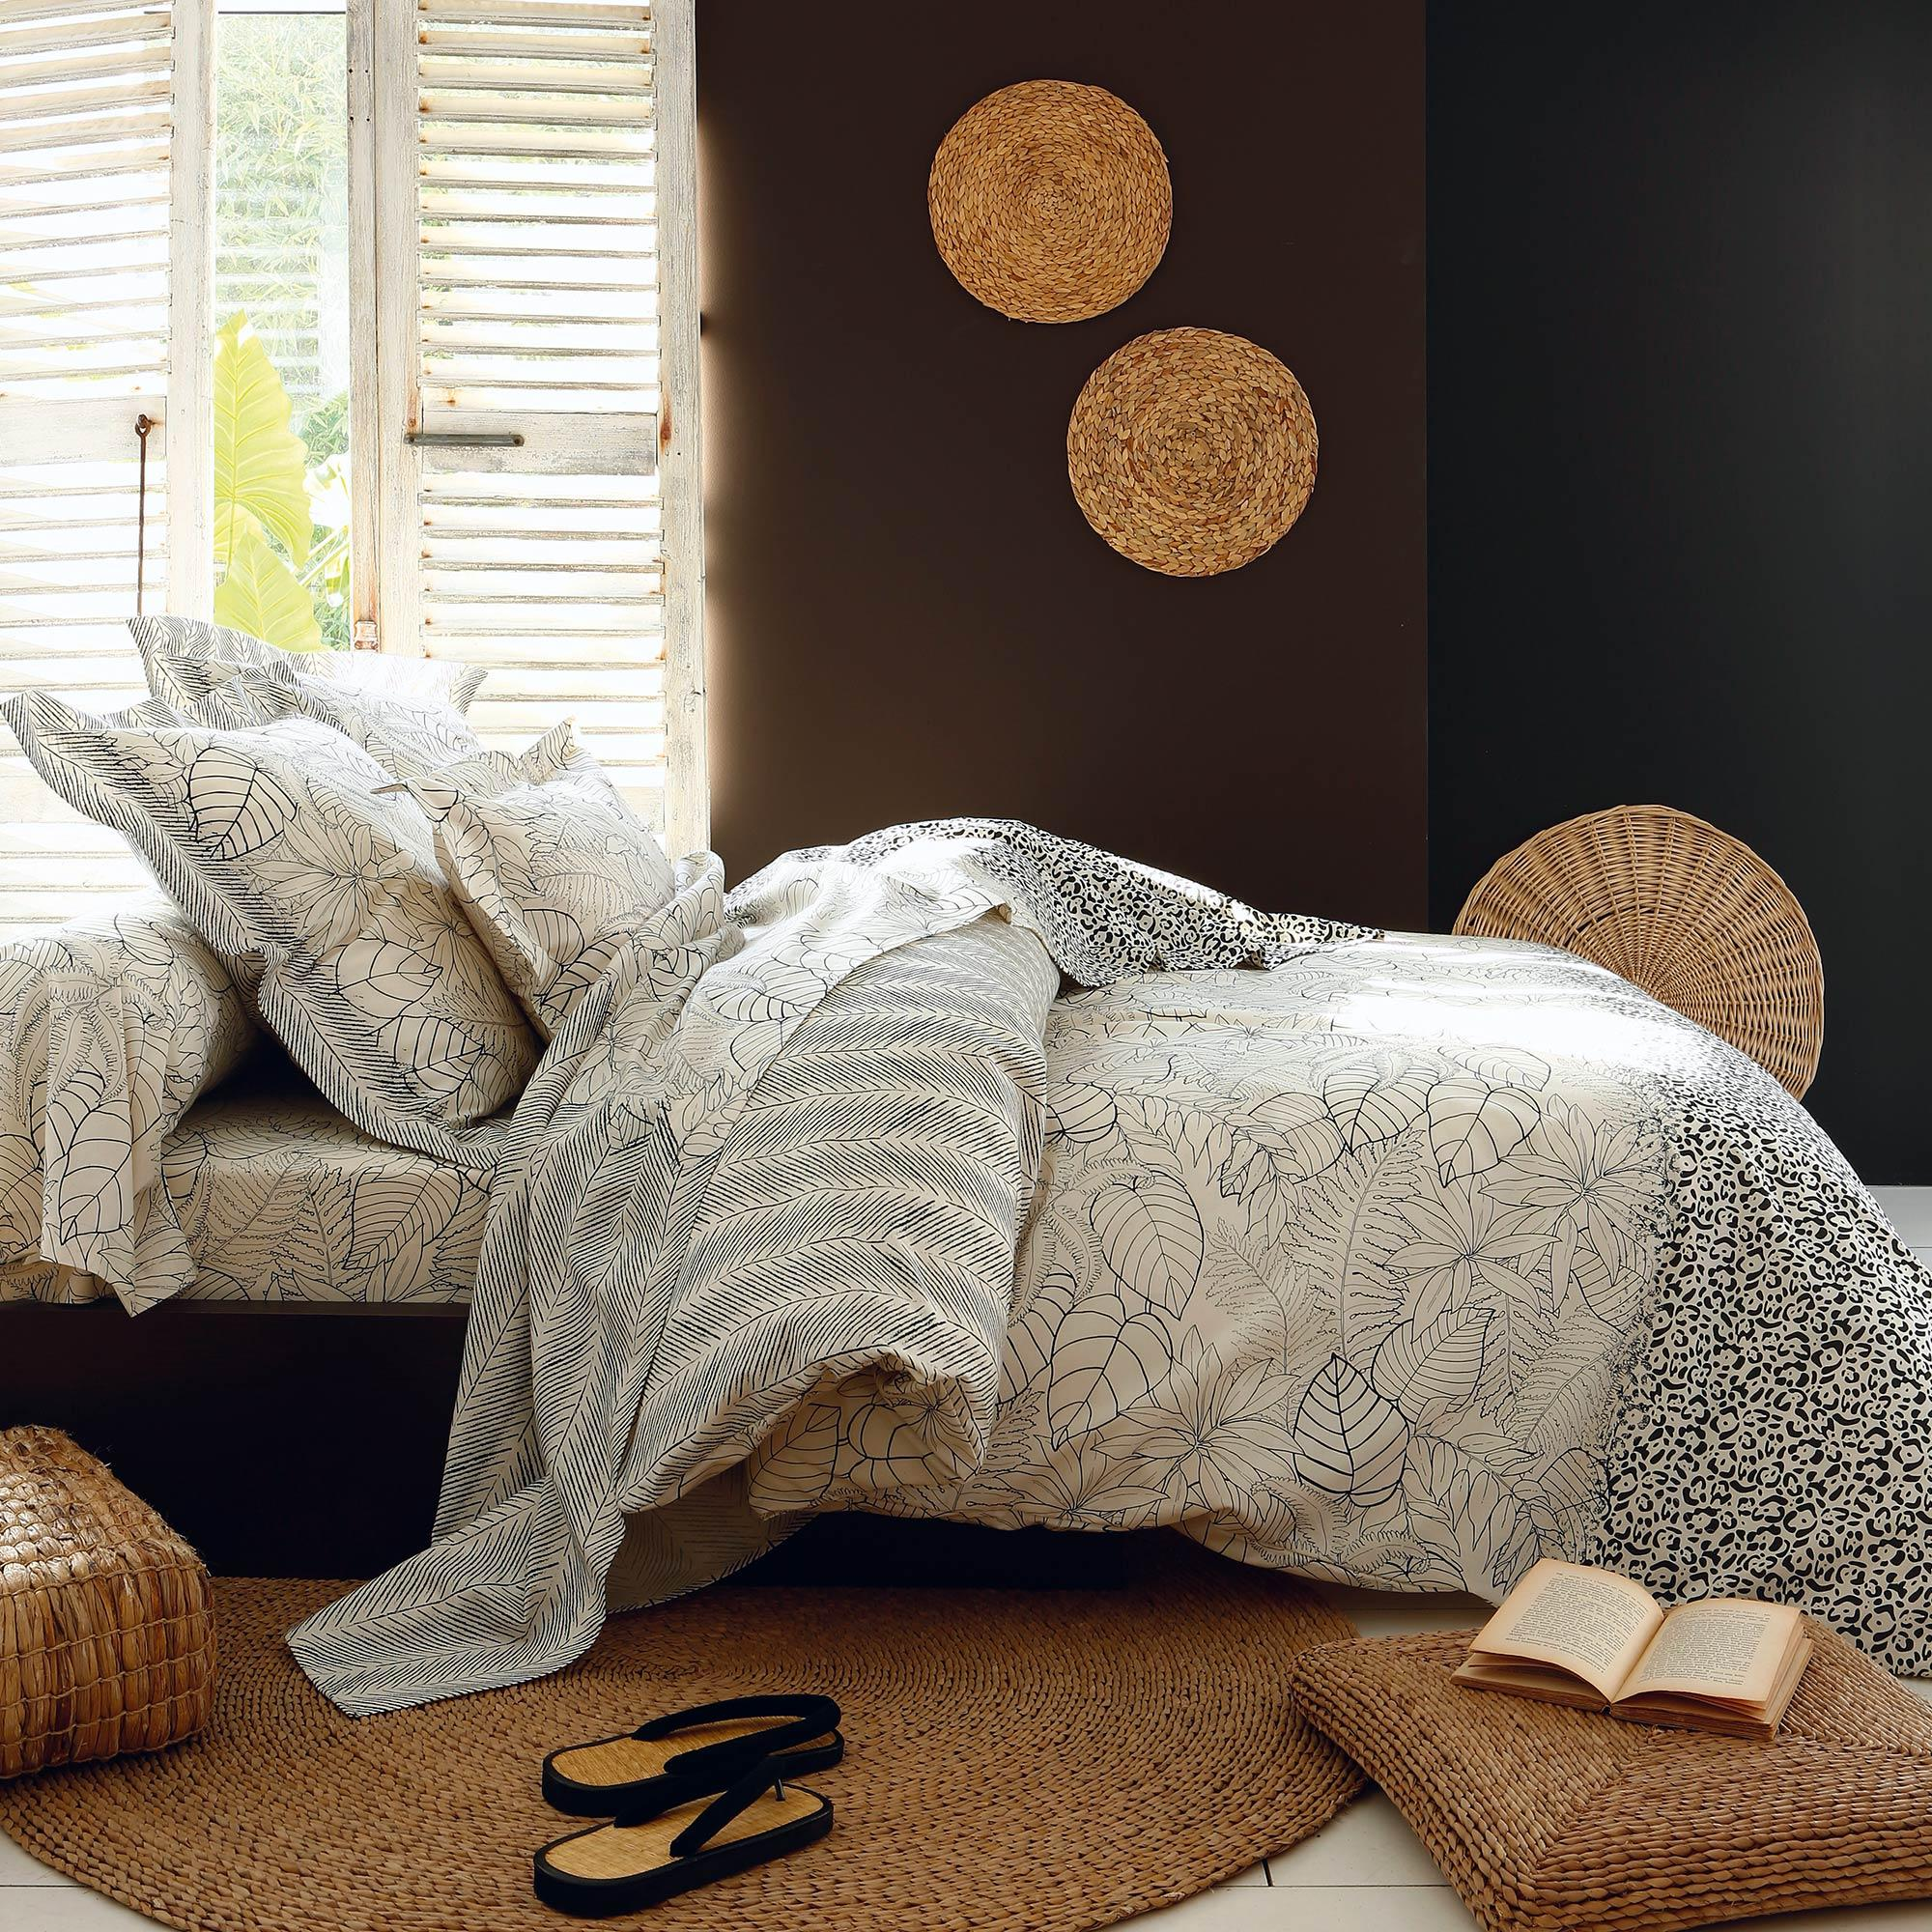 housse de couette 280x240 cm 100 coton natura ecru linnea vente de linge de maison. Black Bedroom Furniture Sets. Home Design Ideas